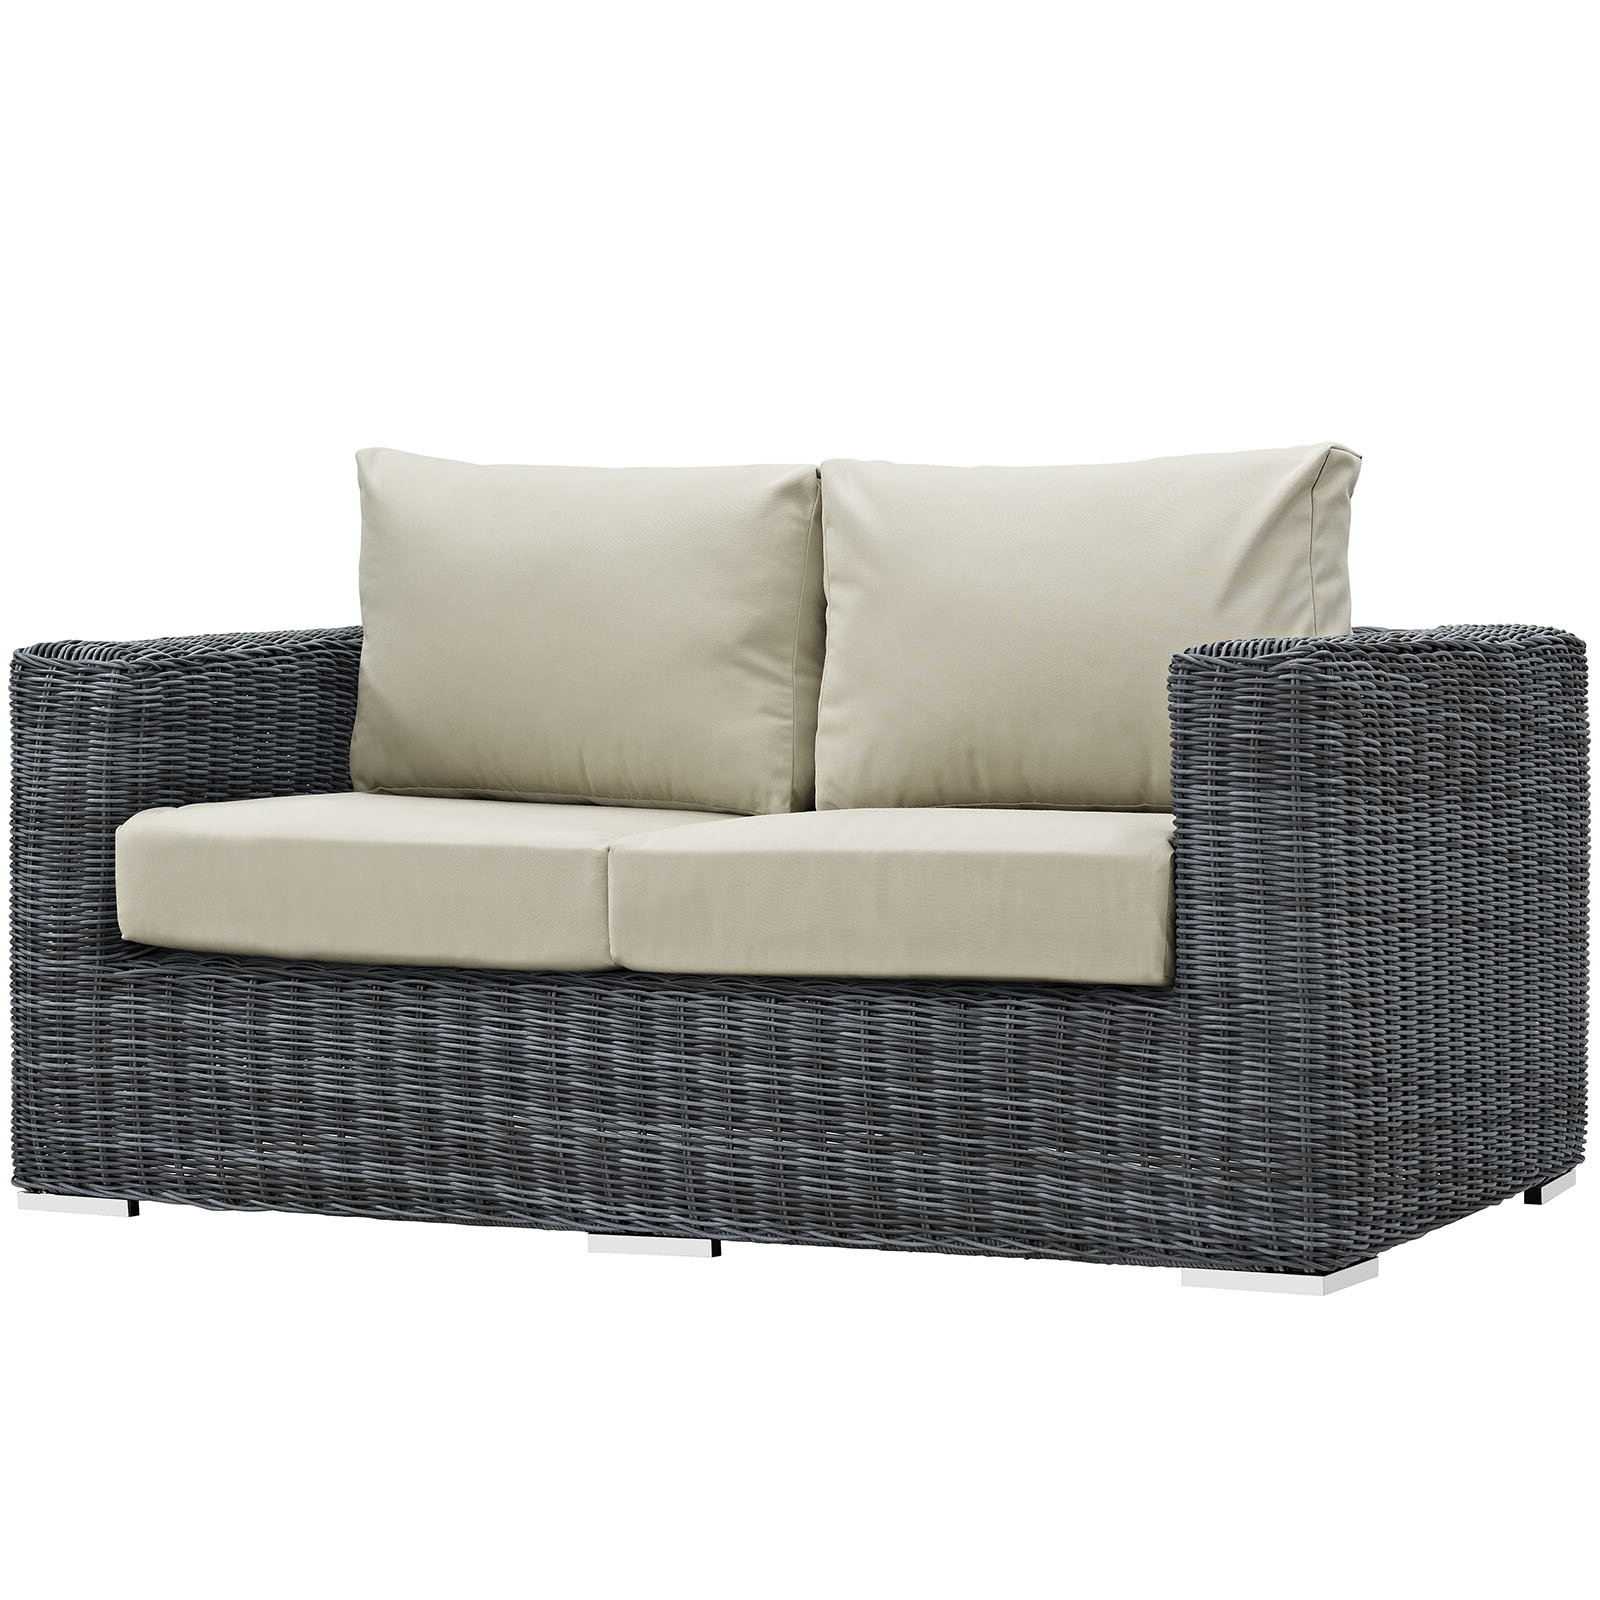 Keiran Loveseat With Cushions Regarding Well Liked Keiran Patio Daybeds With Cushions (View 6 of 20)